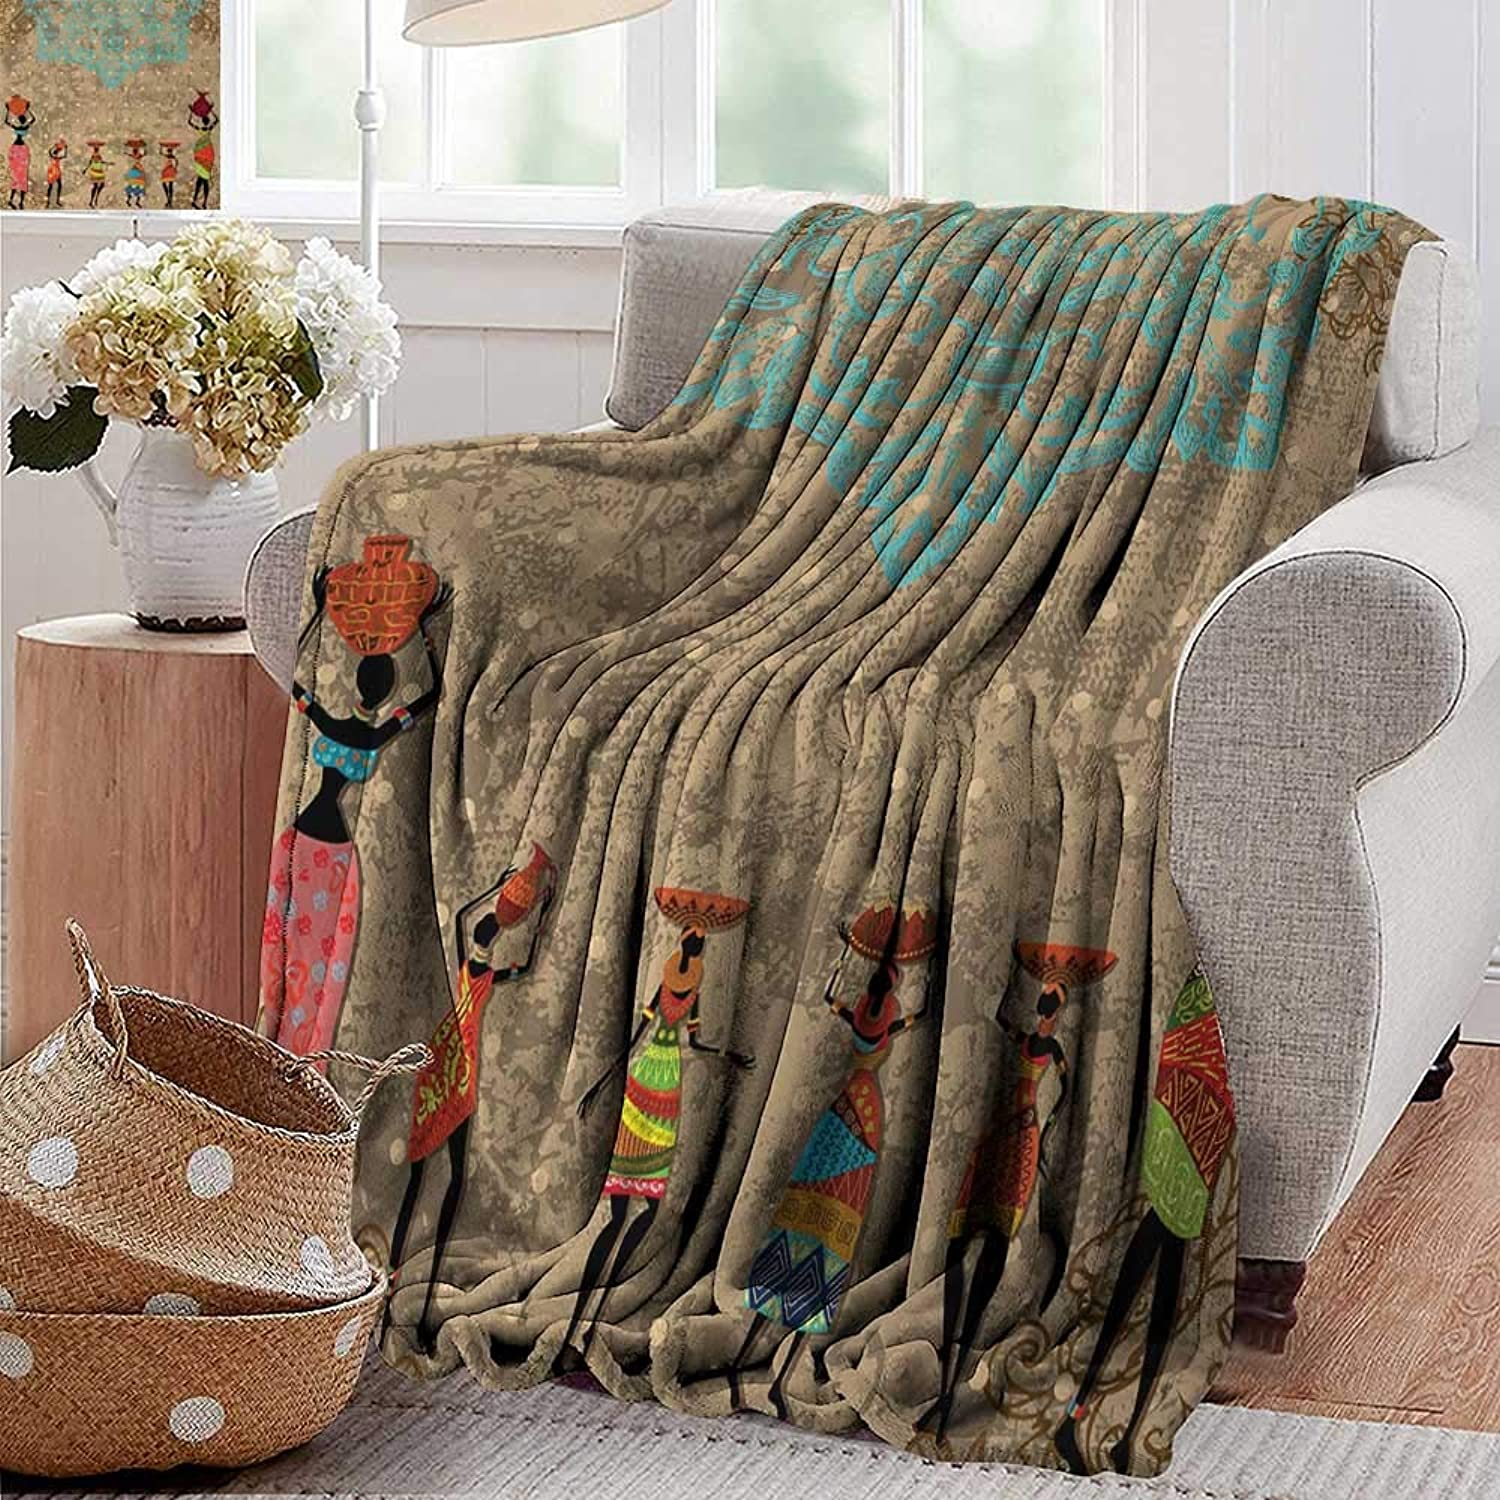 XavieraDoherty Camping Blanket,African,Vintage Girls with Pots on The Head on Folkloric Boho Background Illustration,Seafom Cocoa,Flannel Blankets Made with Plush Microfiber 35 x60